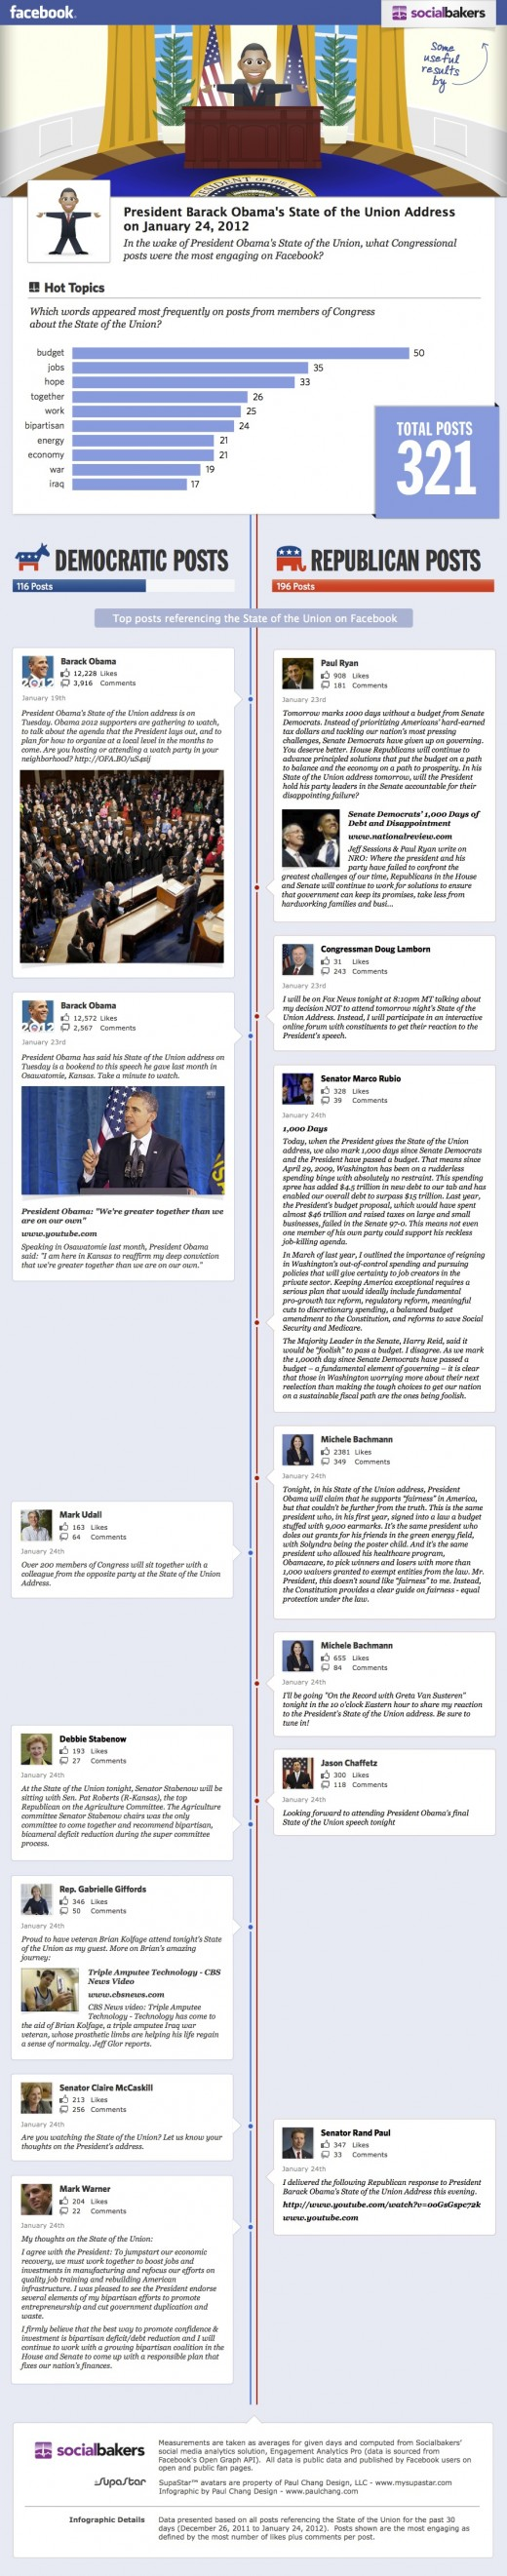 Socialbakers Facebook State of the Union infographic